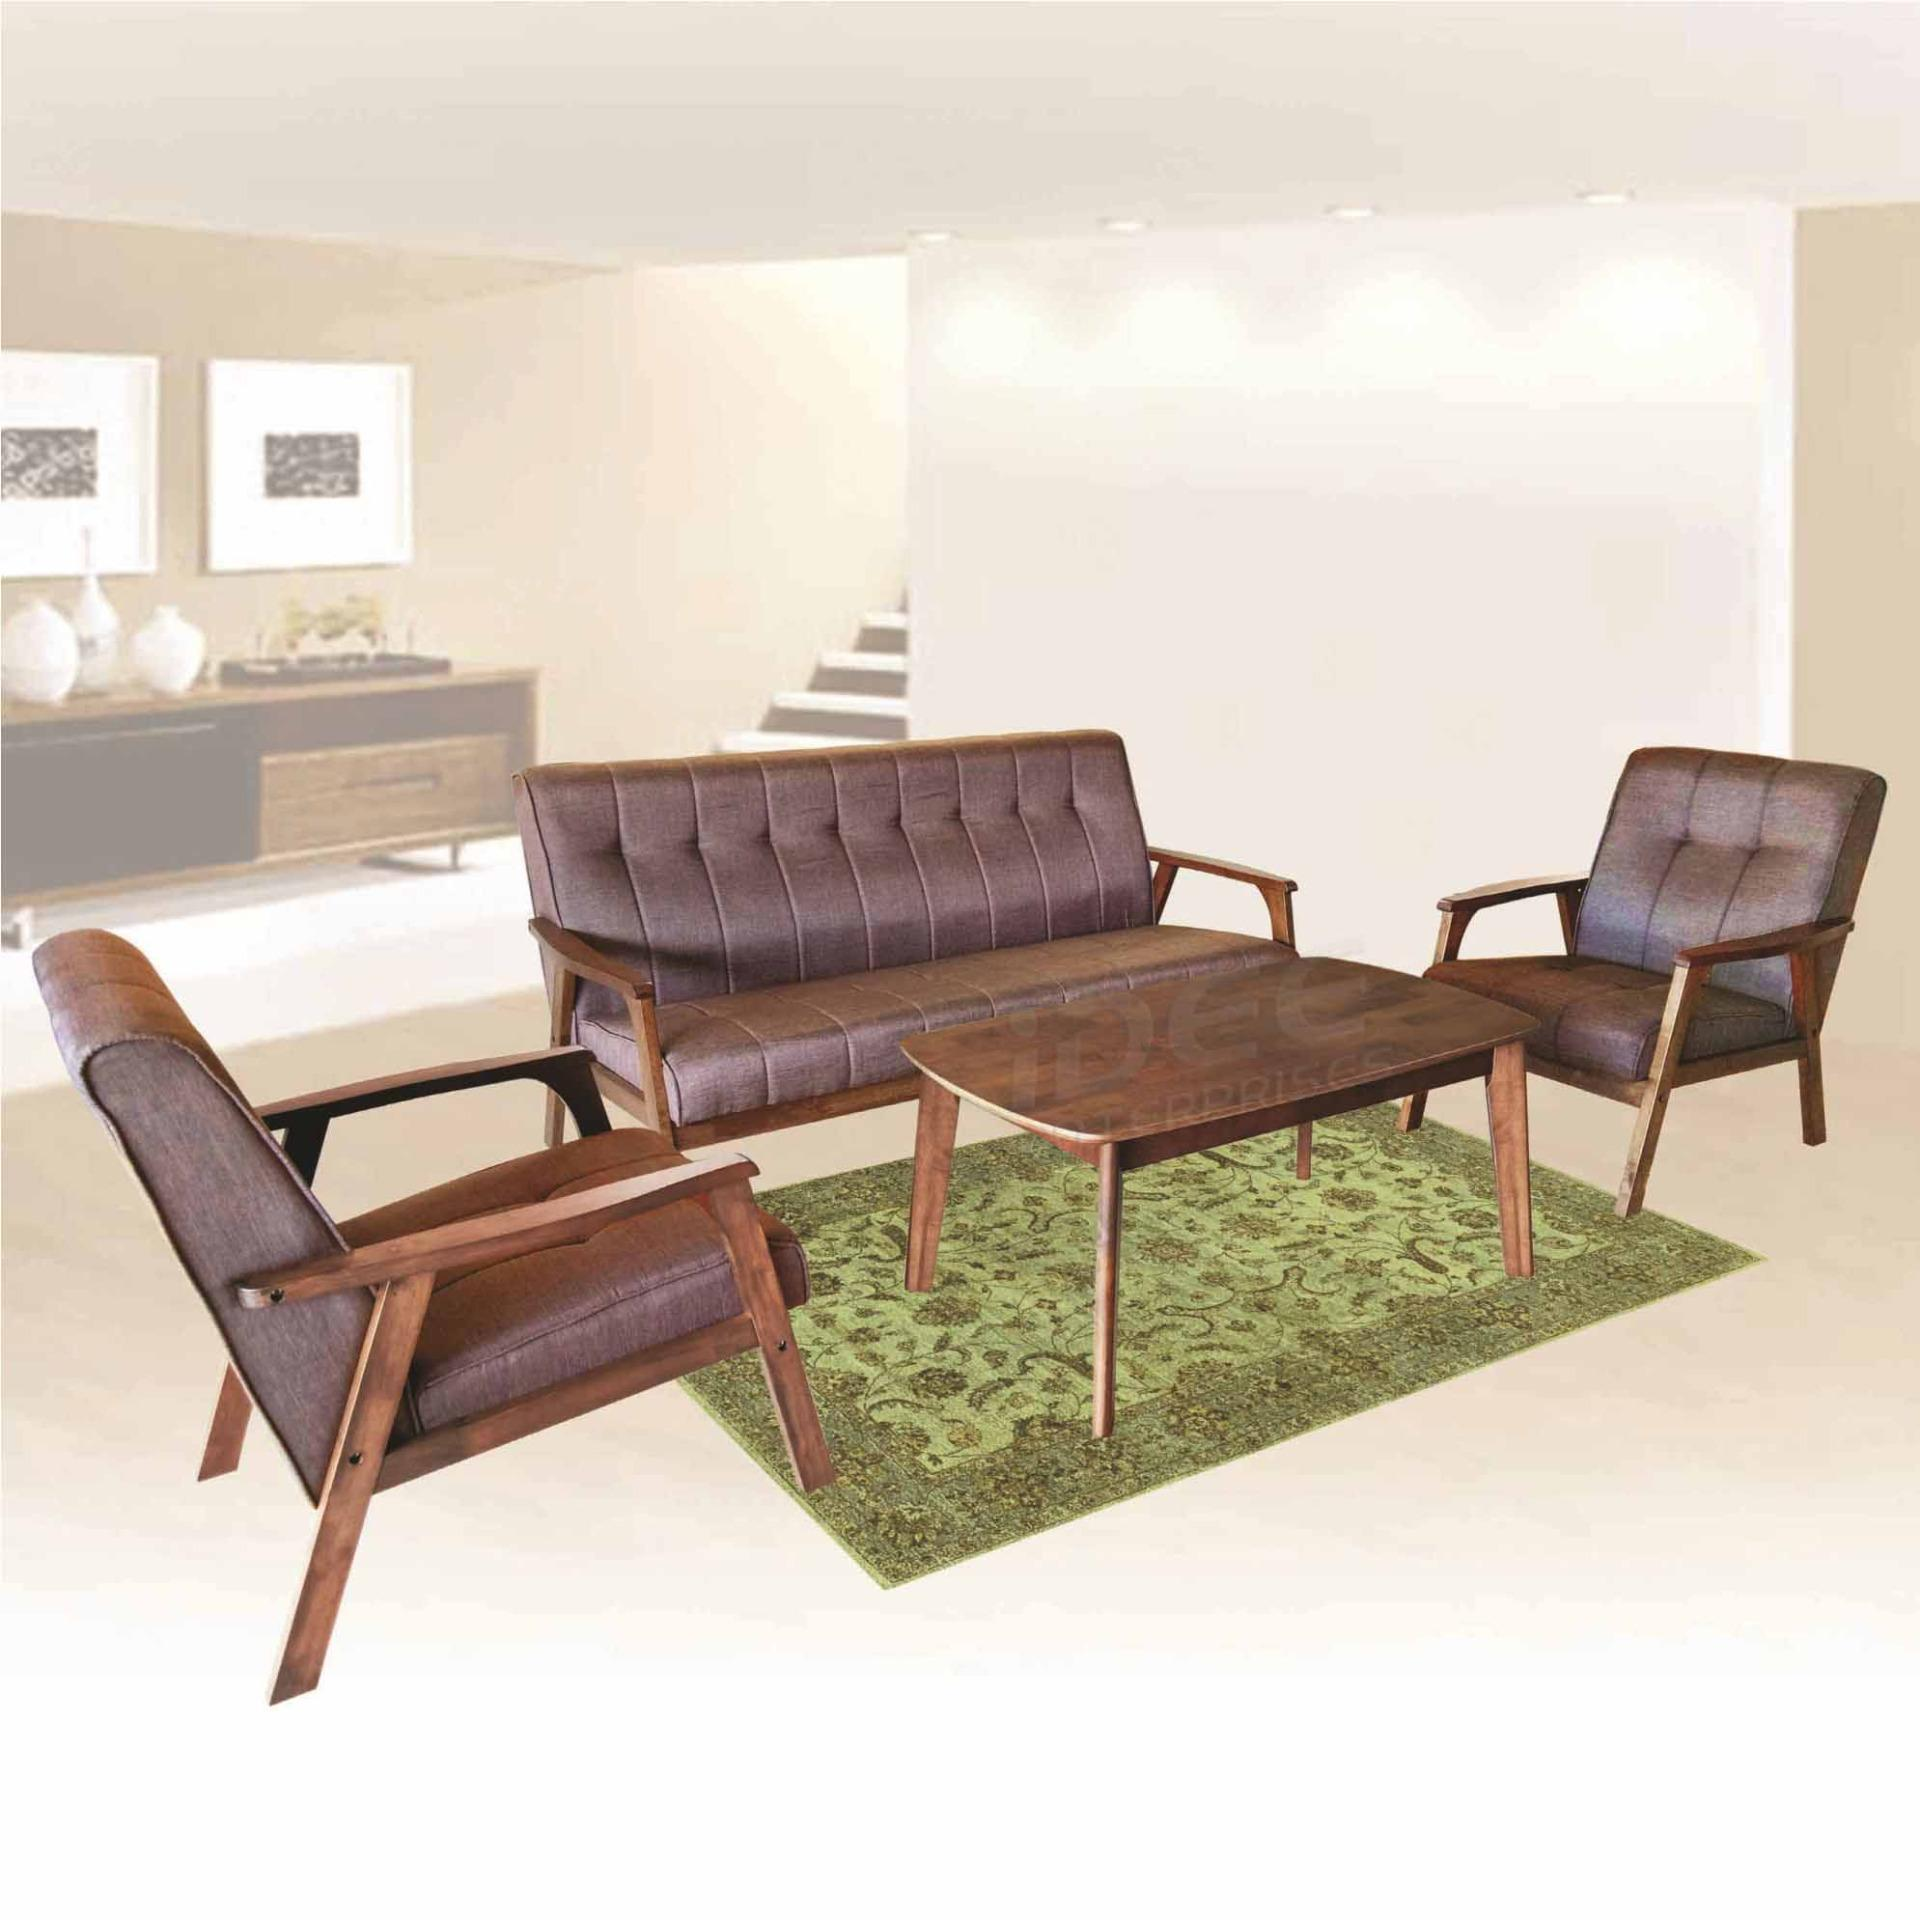 Tailee Matilda 3 1 1 Seater Fabric Sofa Set With Center Table  ~ Sofa Set With Center Table